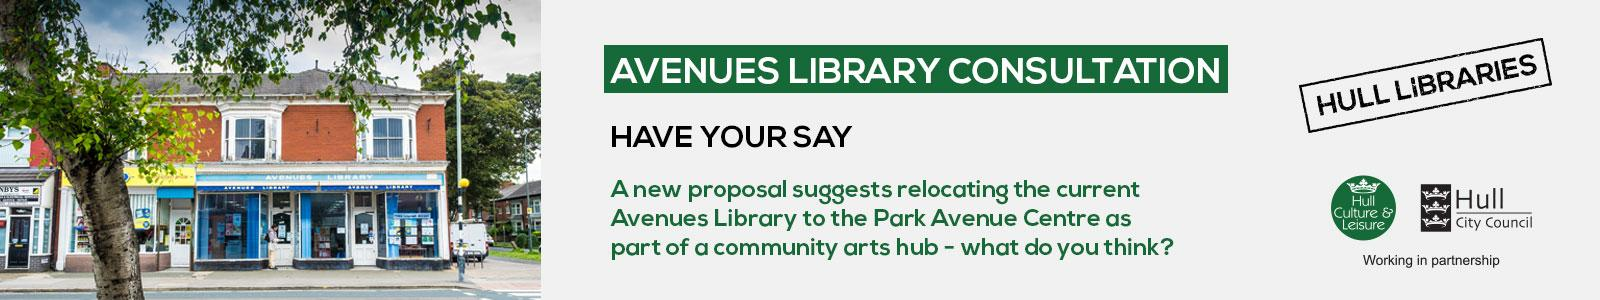 Avenue Library Consultation